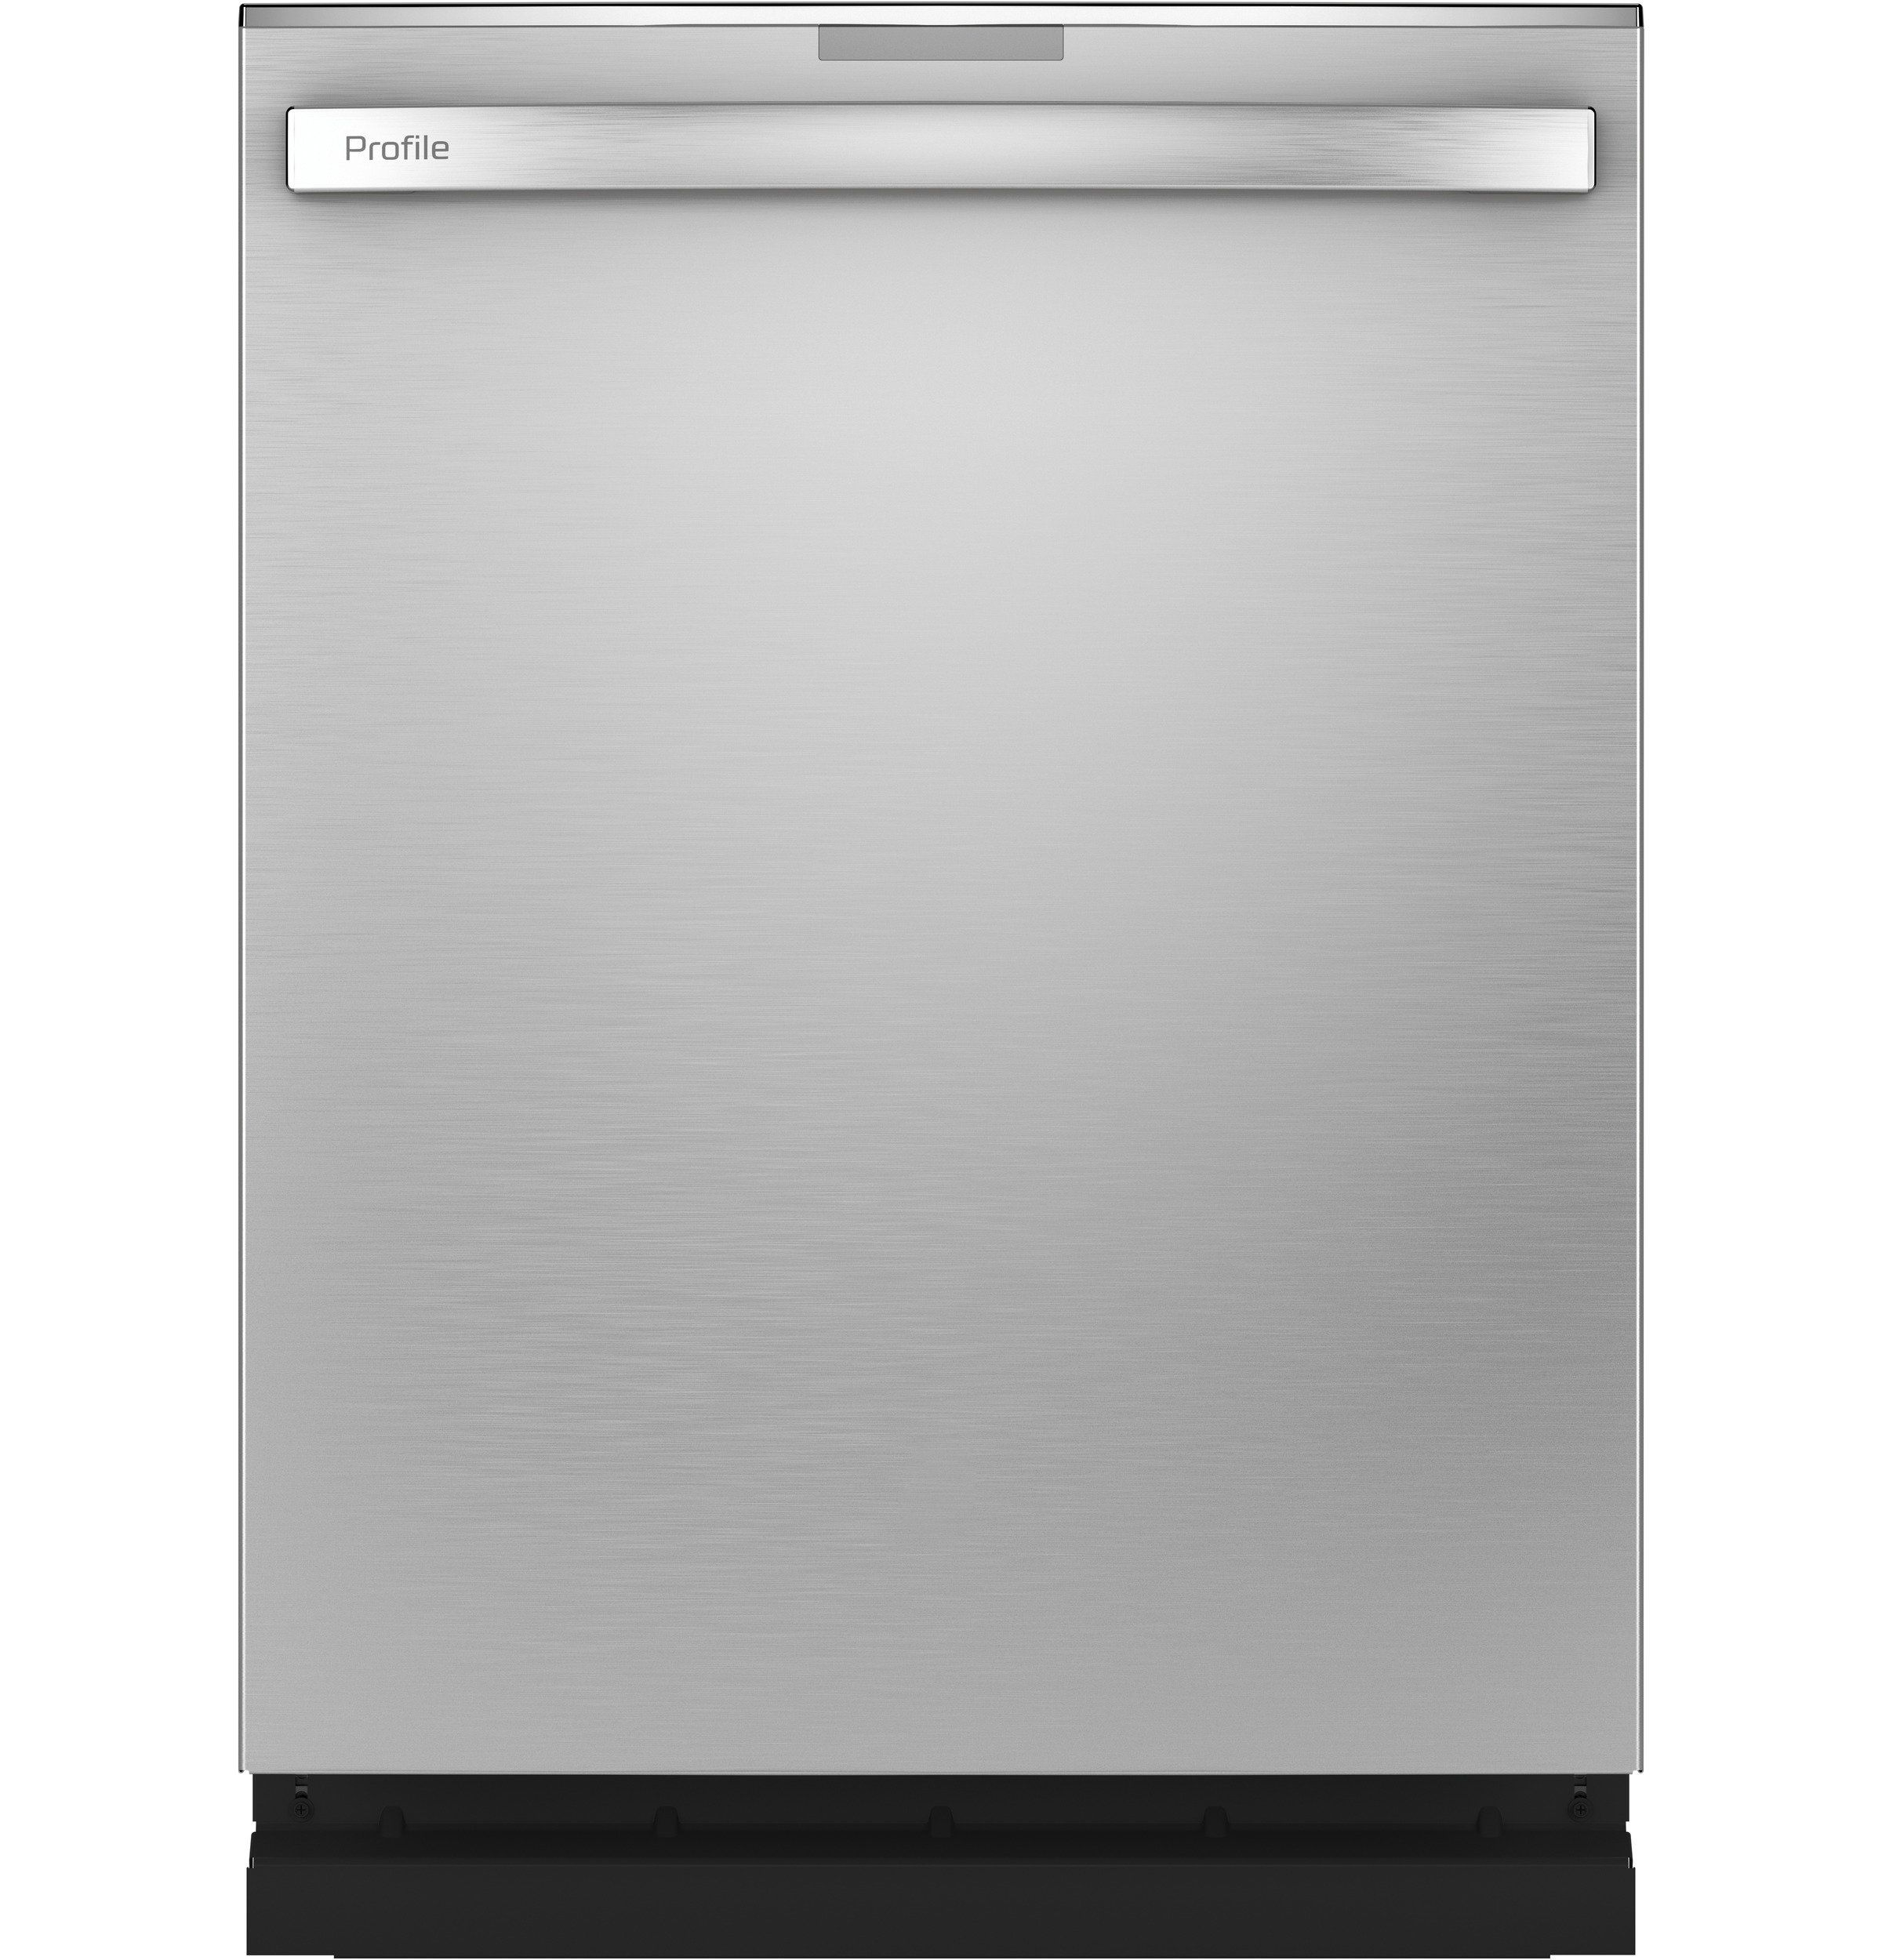 Ge Profile Dishwasher With Silverware Jets Stainless Steel Ge Appliances Built In Dishwasher Ge Profile Dishwasher